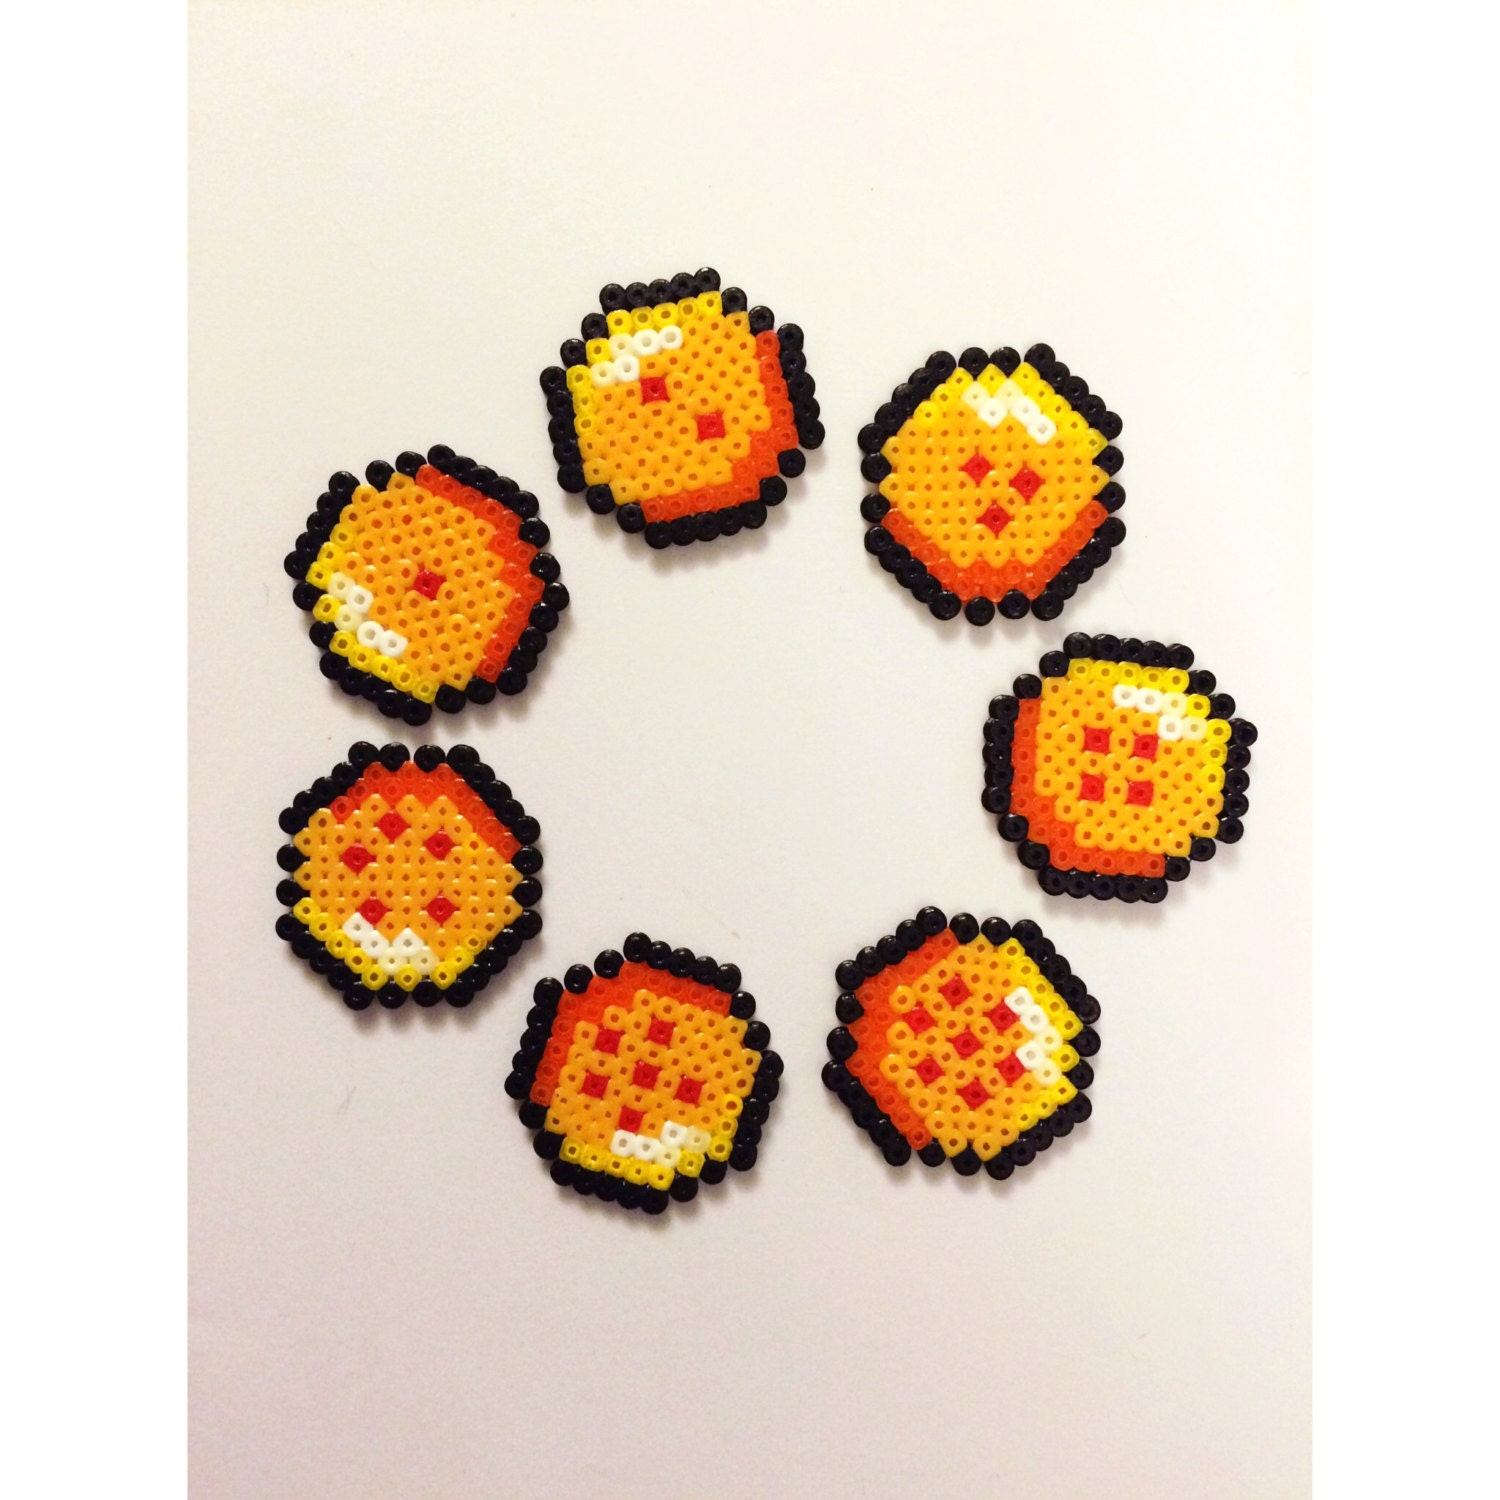 Fabuleux Dragon ball Z balls mini hama bead/perler creation pixel art. SW78